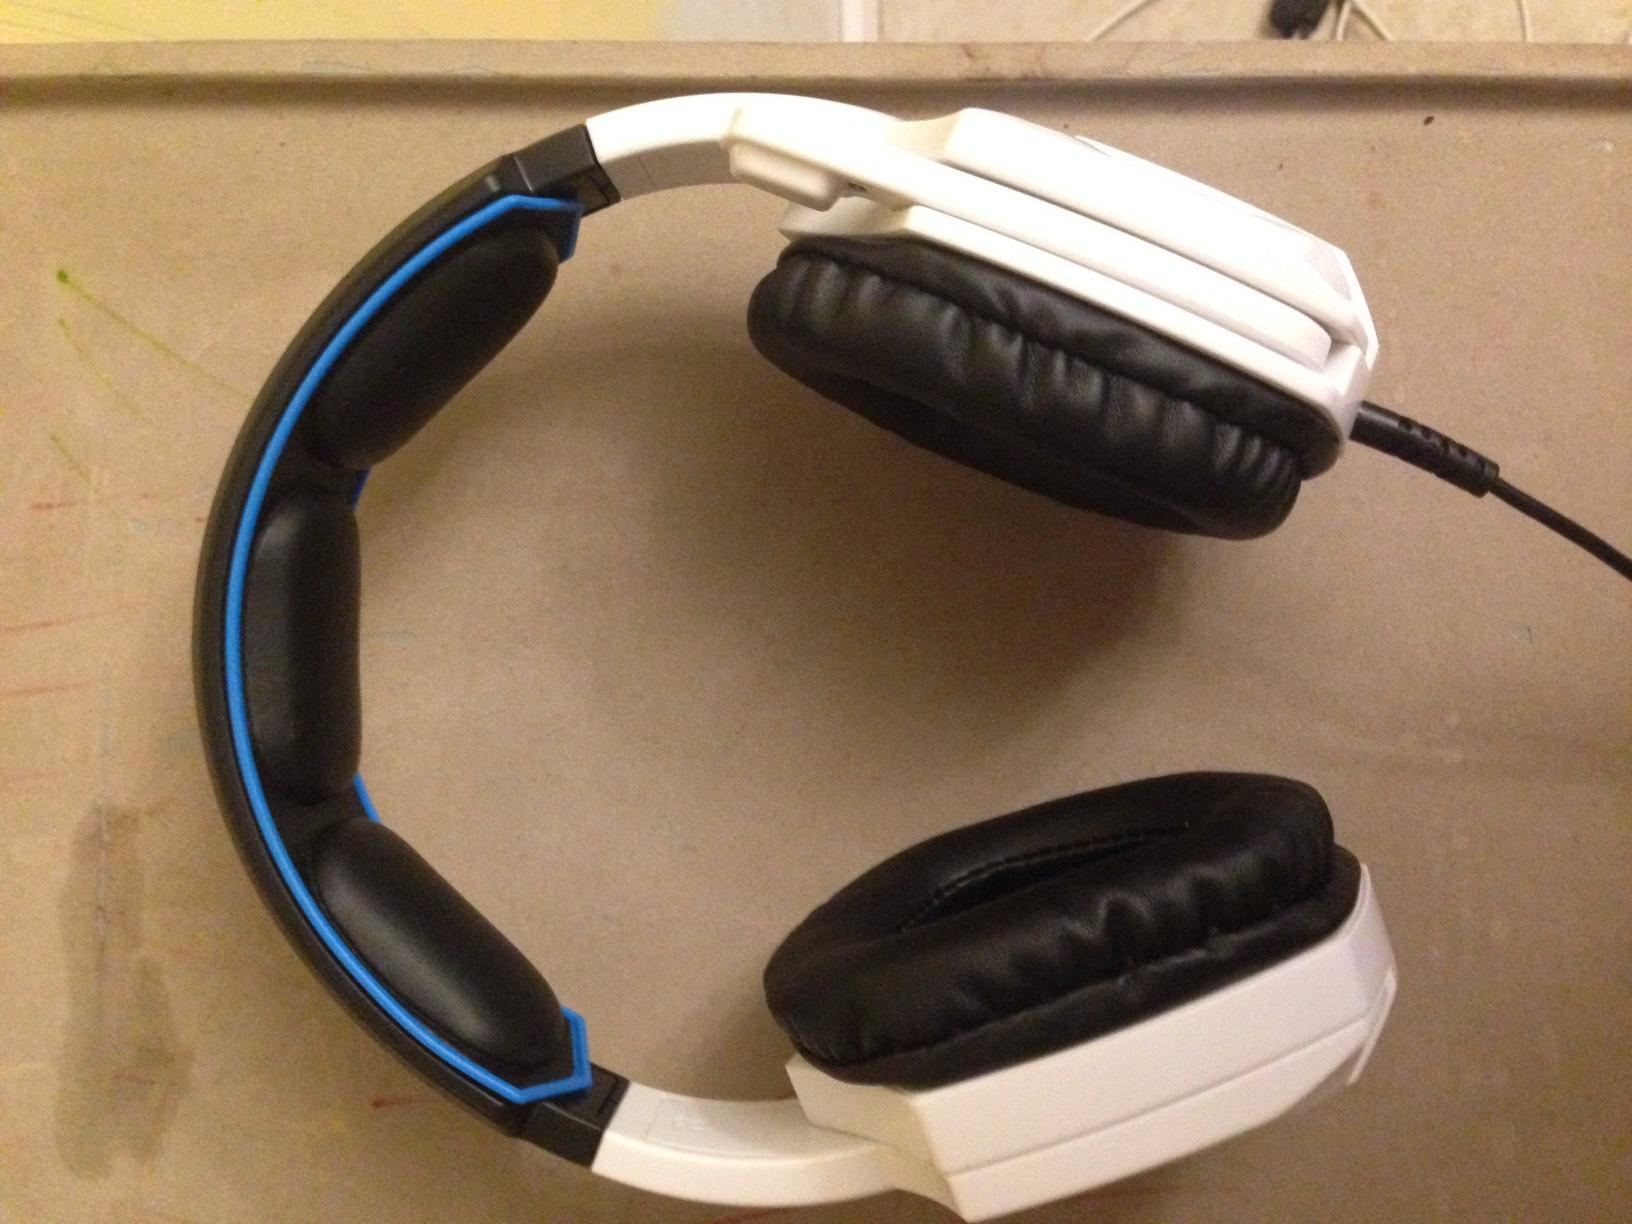 Sades Sa 708gt 35mm Gaming Headphone Sales Online Black Blue Tomtop 708 Headset Stereo Sound The Is Good But Not Excellent I Think Their Great